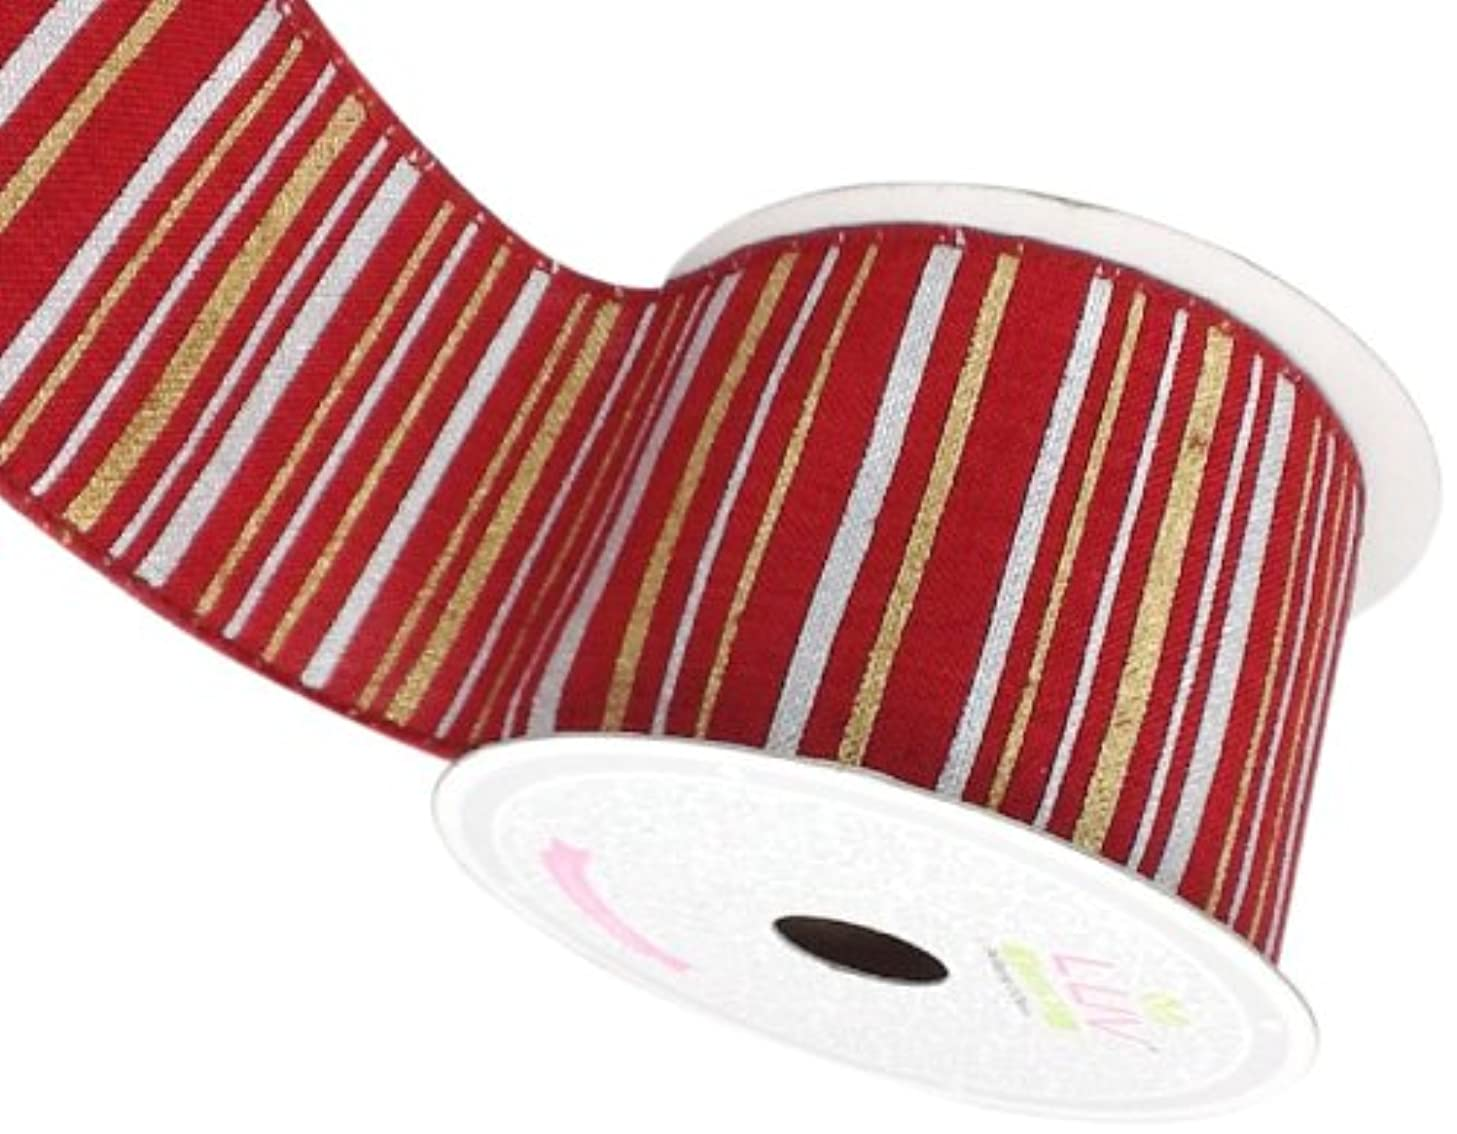 LUV RIBBONS Fabric Ribbon by Creative Ideas, 2-1/2-Inch, Canvas Metallic Stripes, Red